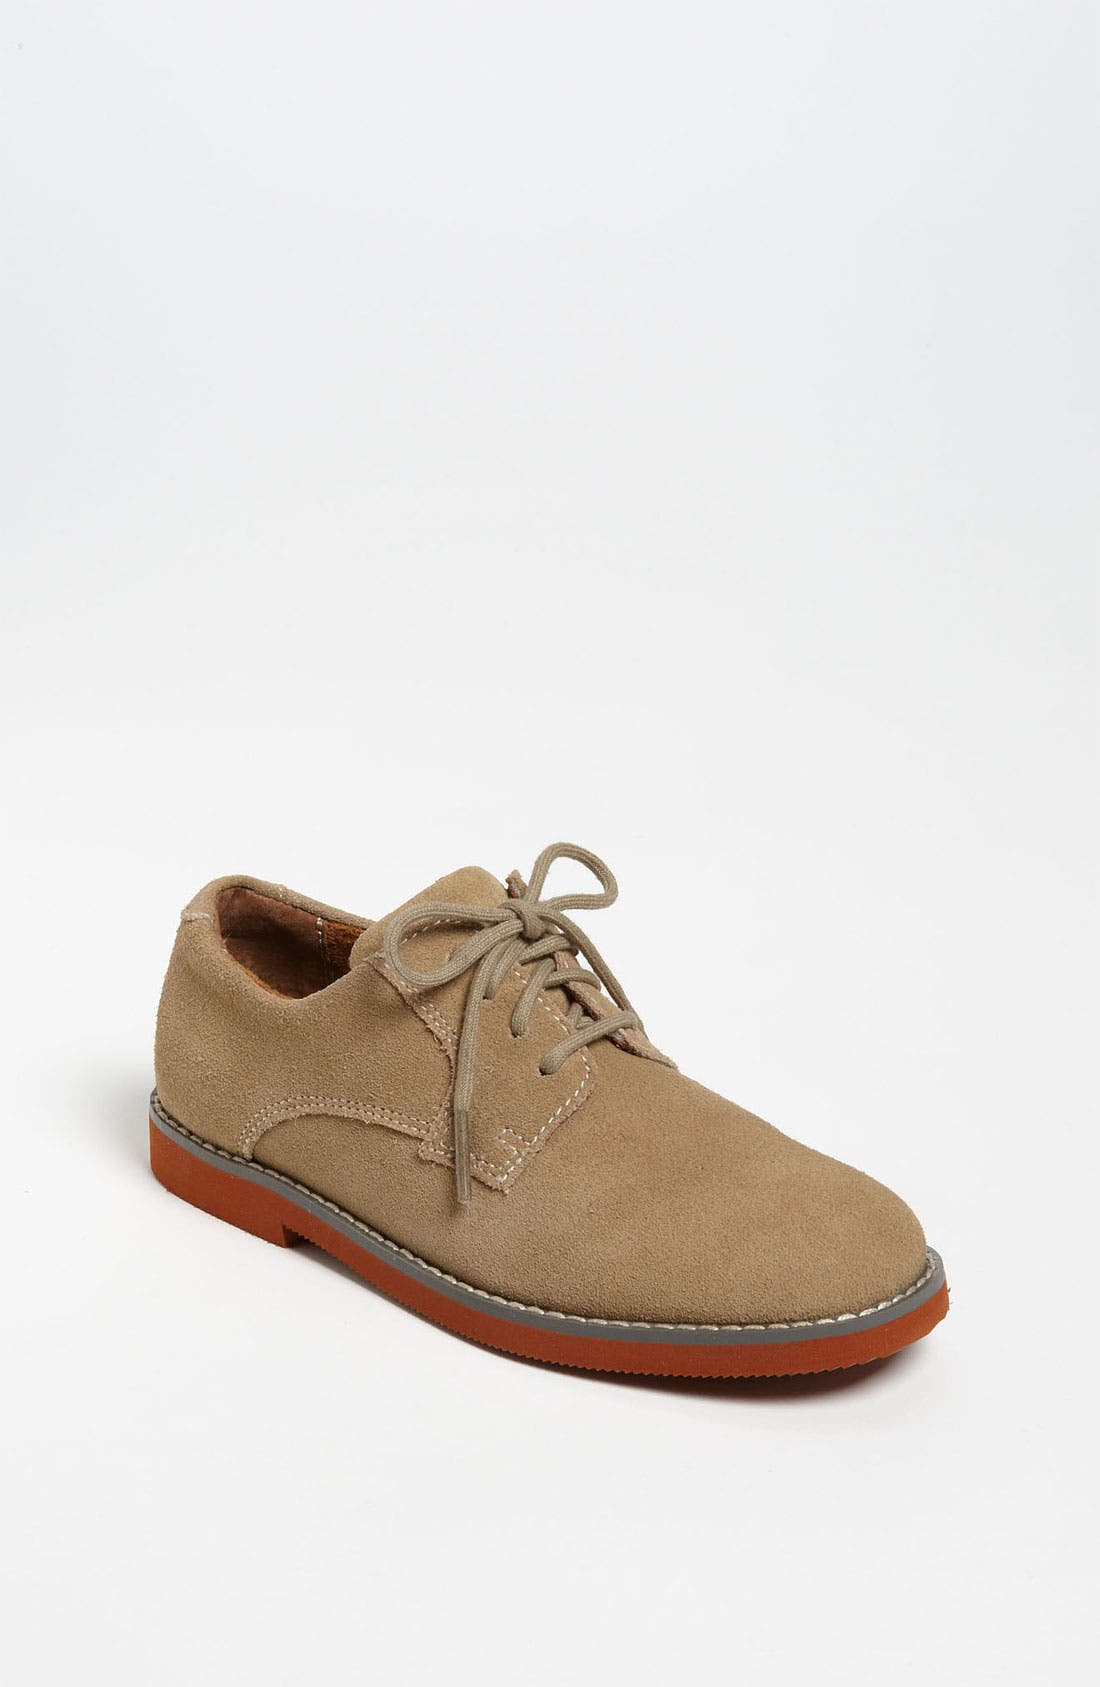 Alternate Image 1 Selected - Florsheim 'Kearny' Oxford (Toddler, Little Kid & Big Kid)